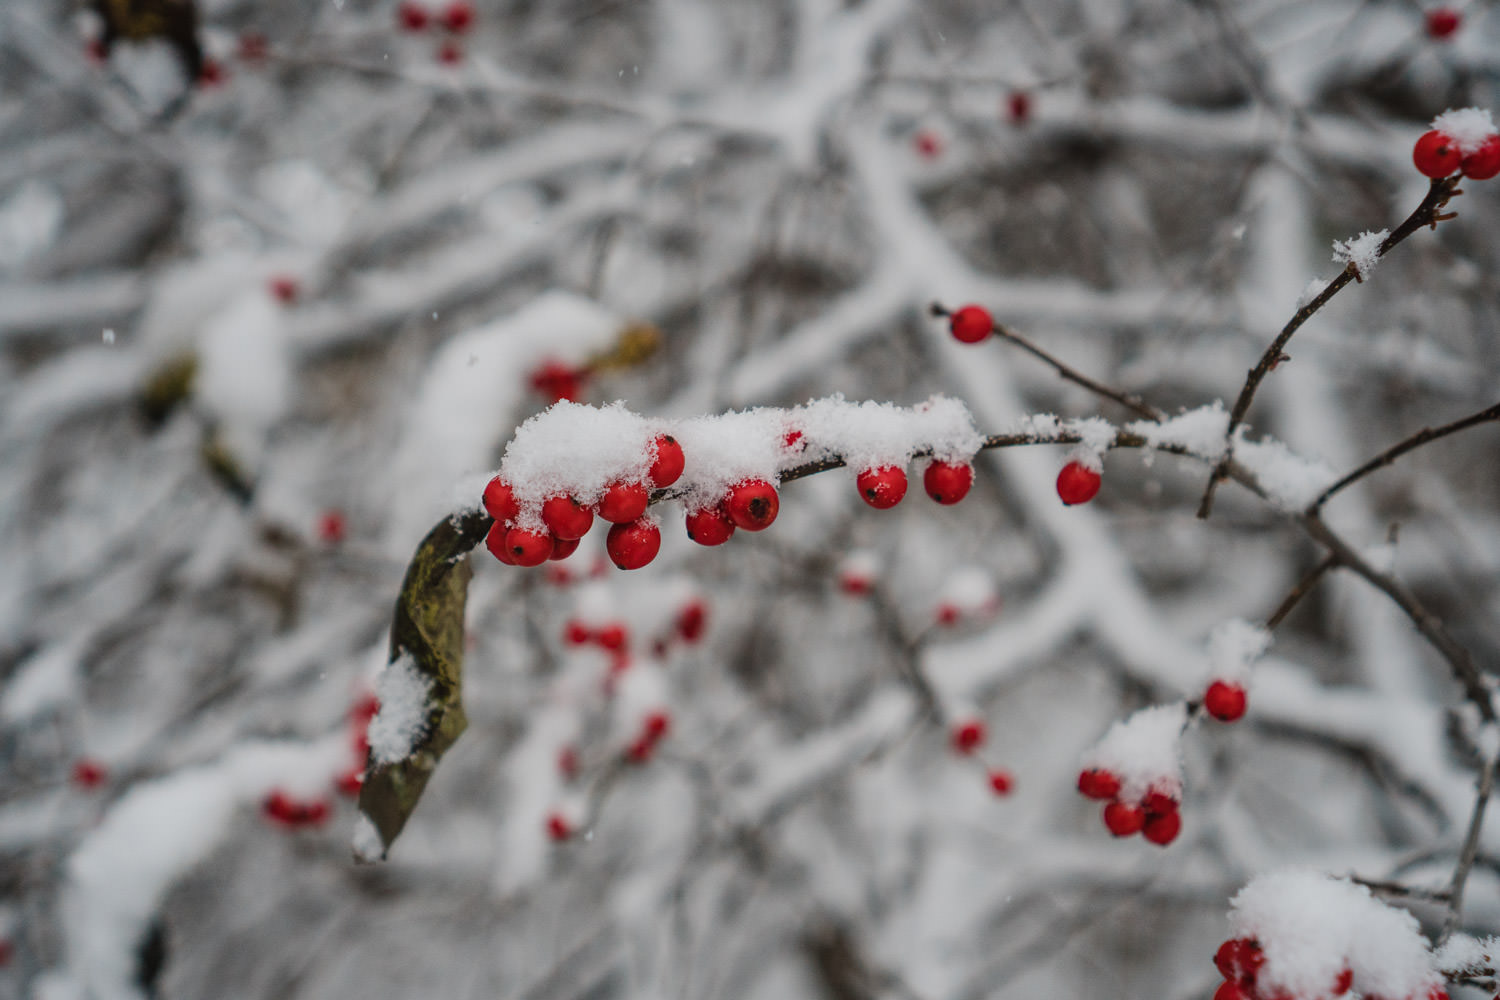 Red berries covered in snow.